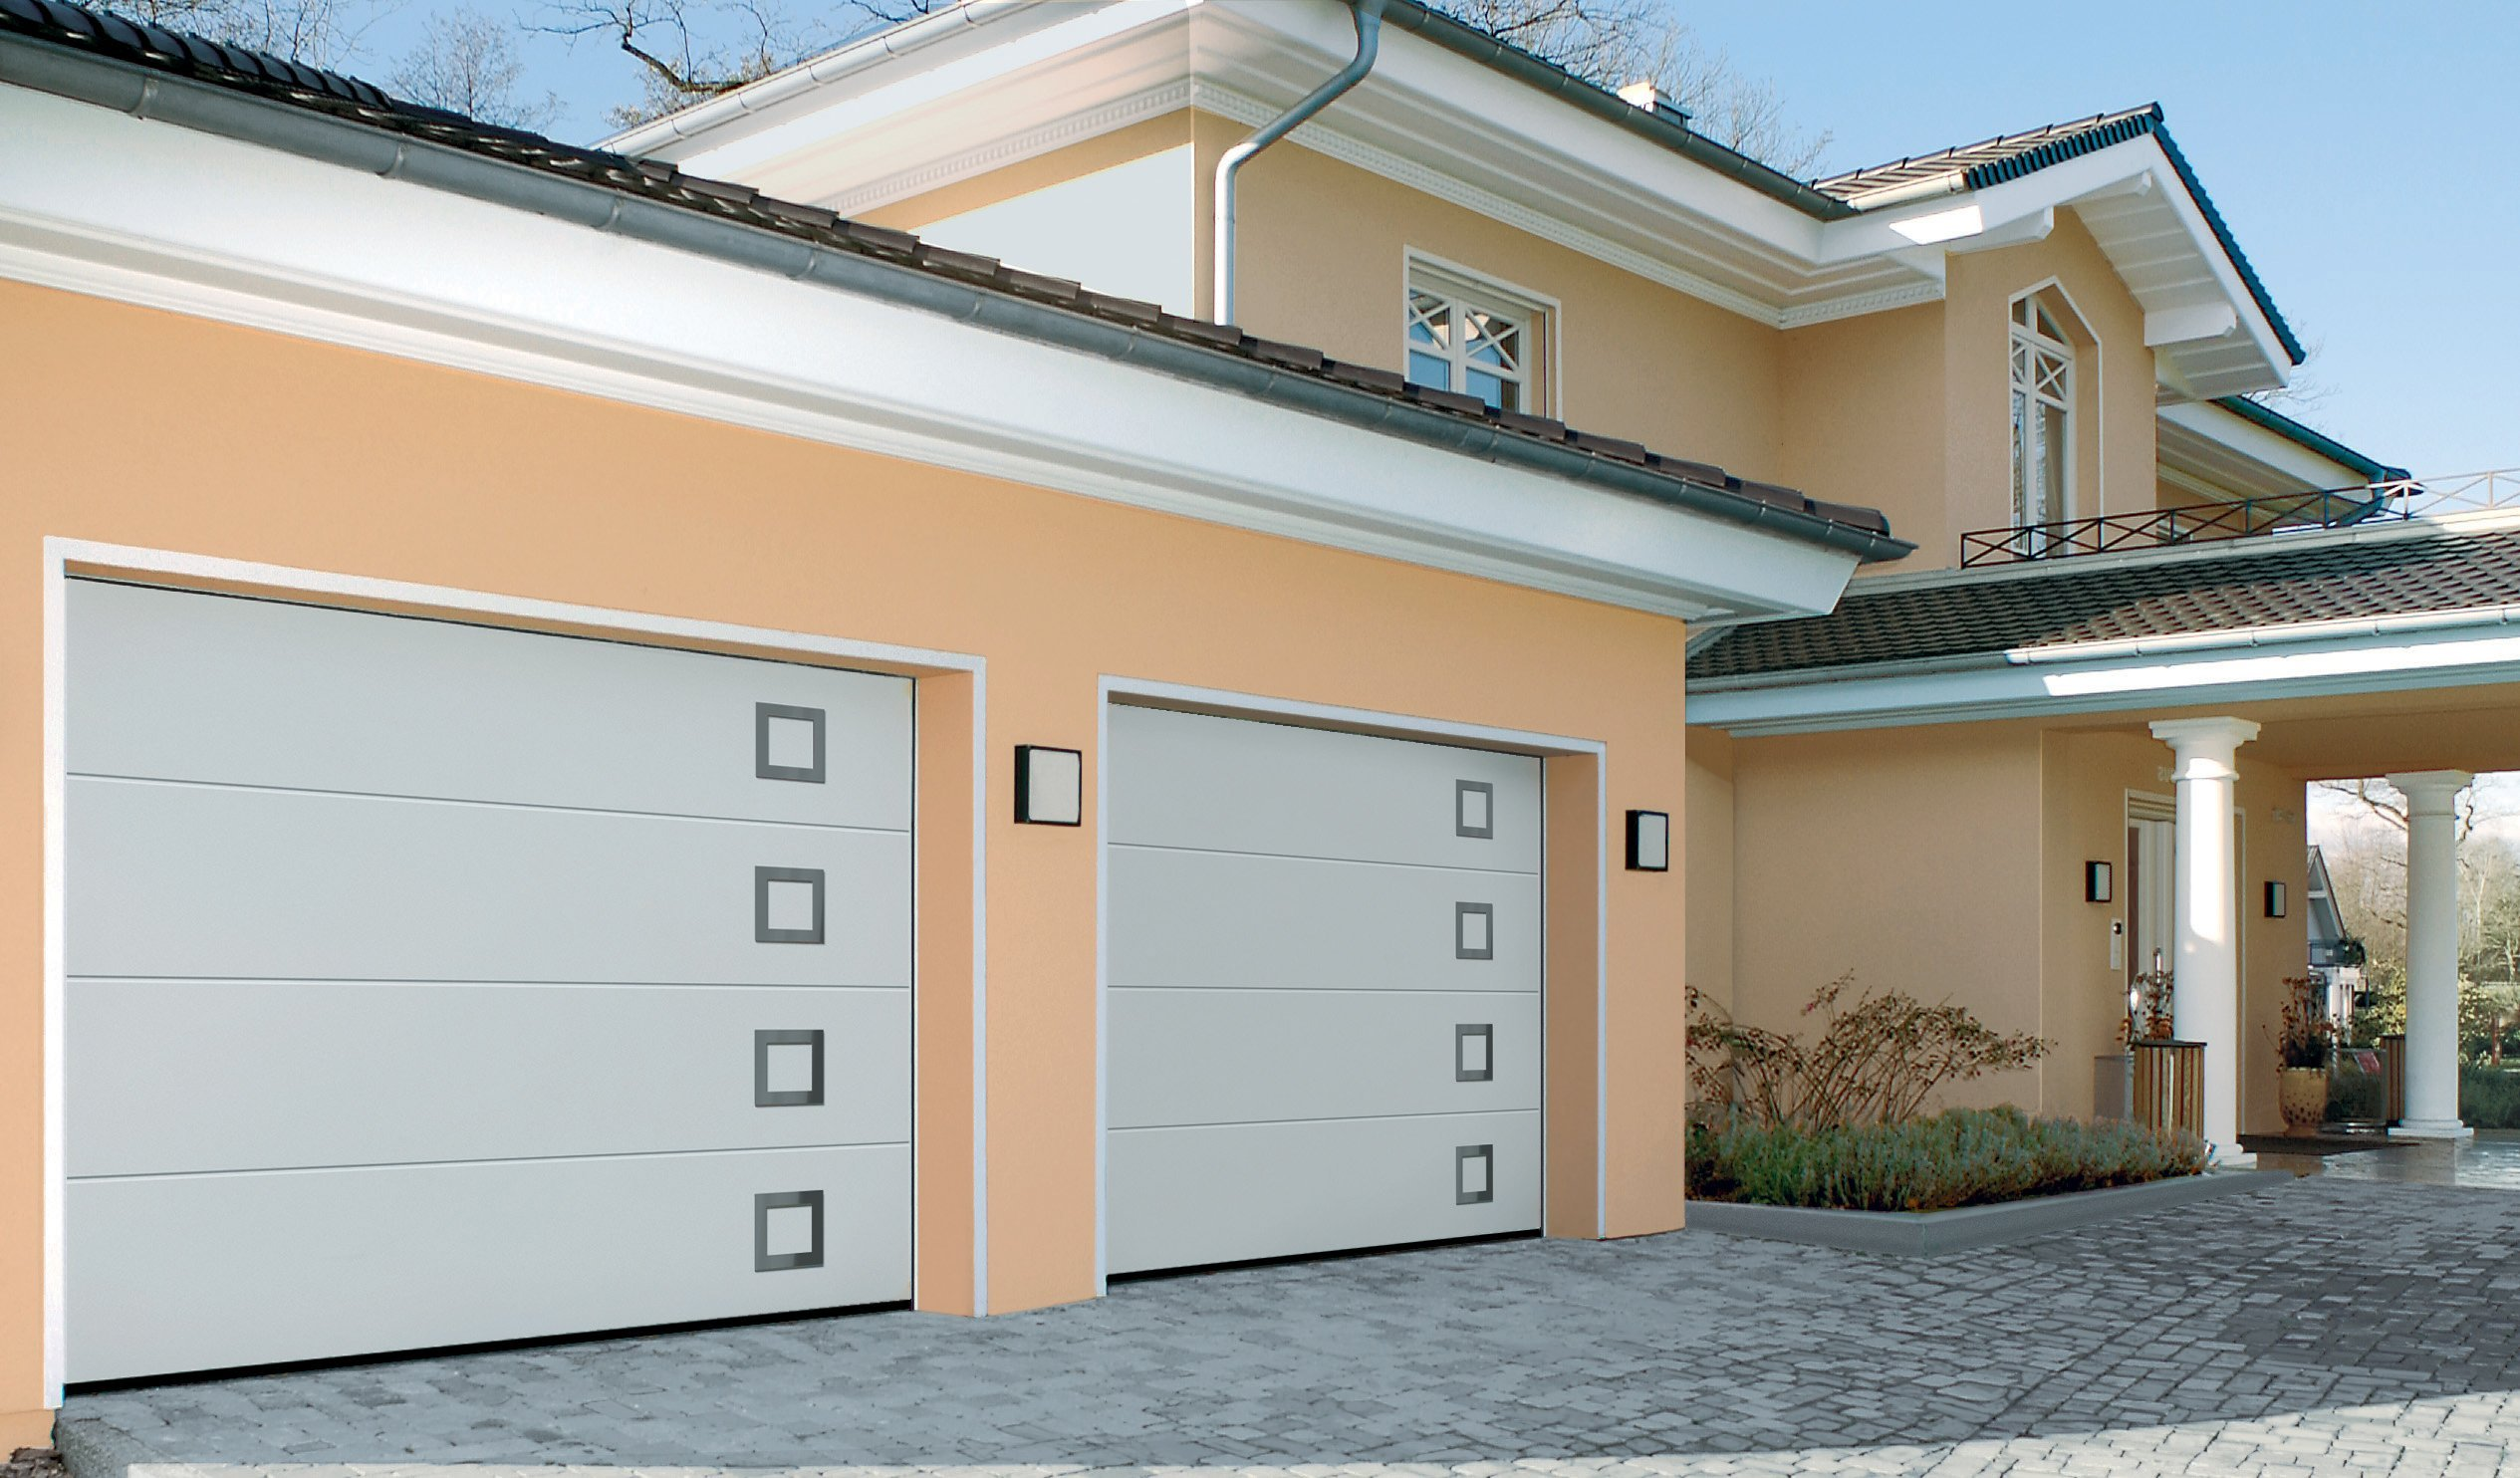 Automatic Sectional Garage door Swansea, Llanelli, Bridgend, Port Talbot, Newport, Cardiff, Cowbridge, the Vale of Glamorgan, Carmarthen and Pembrokeshire